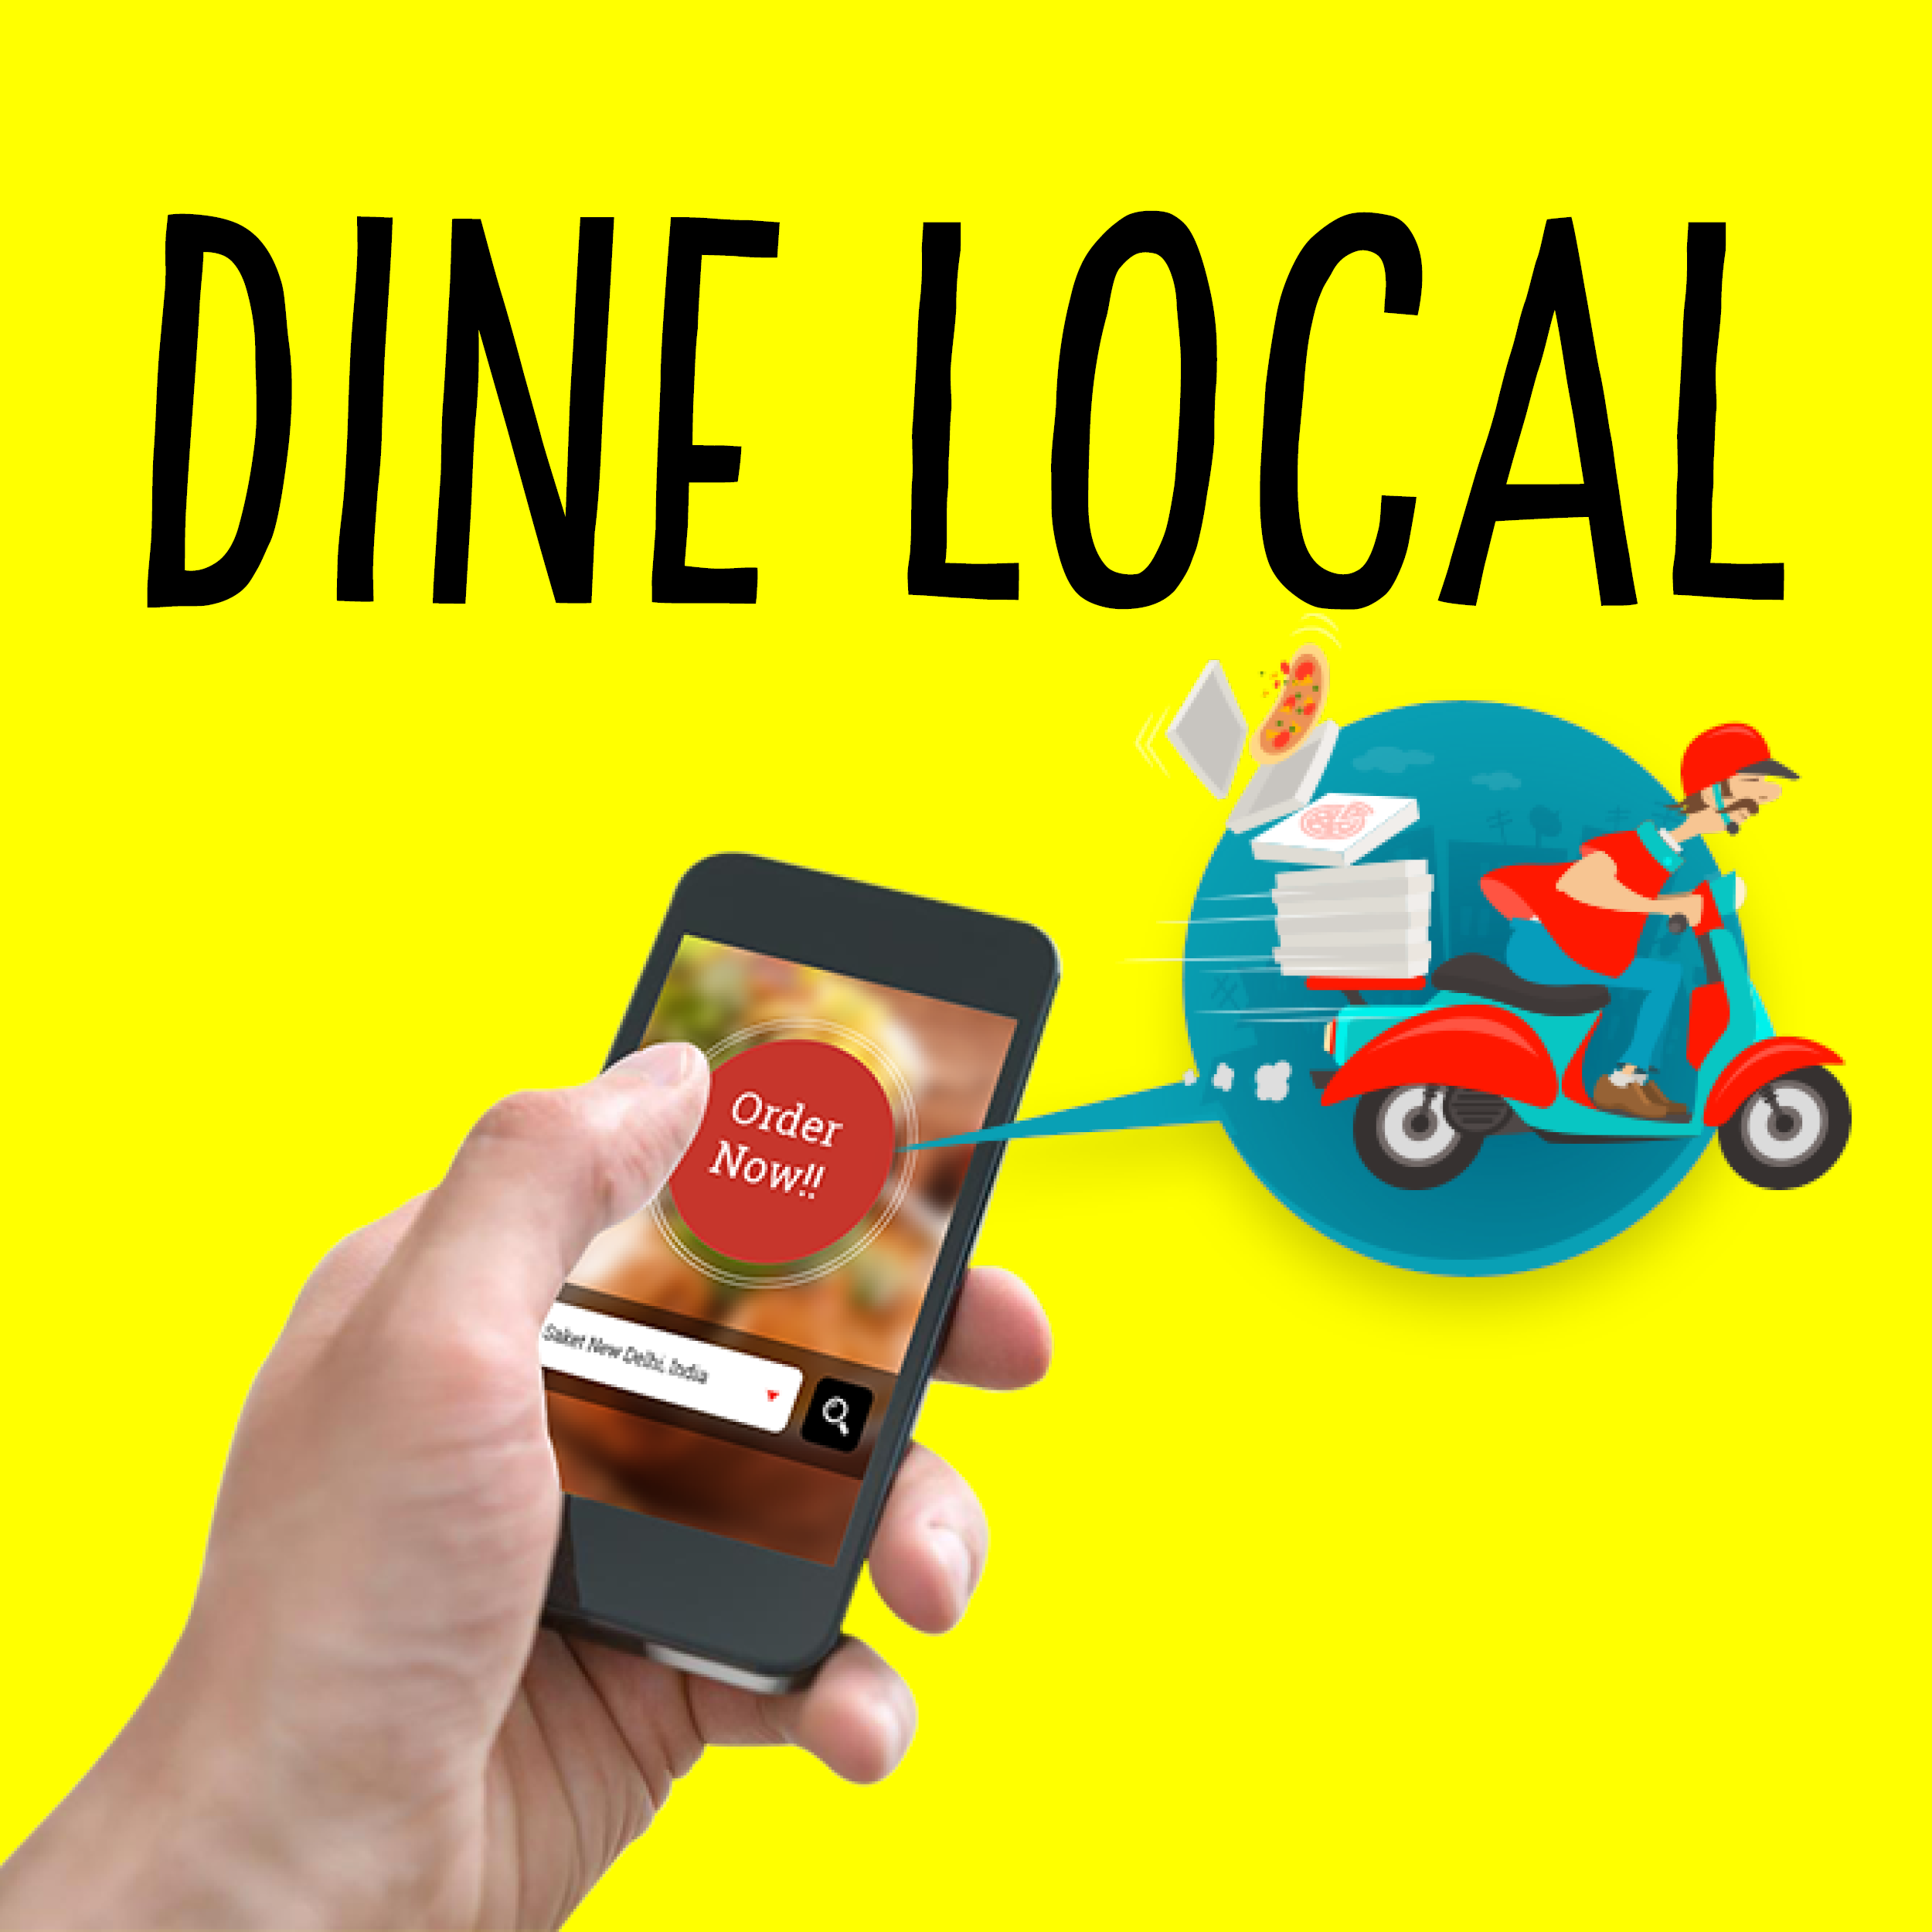 Dine local square